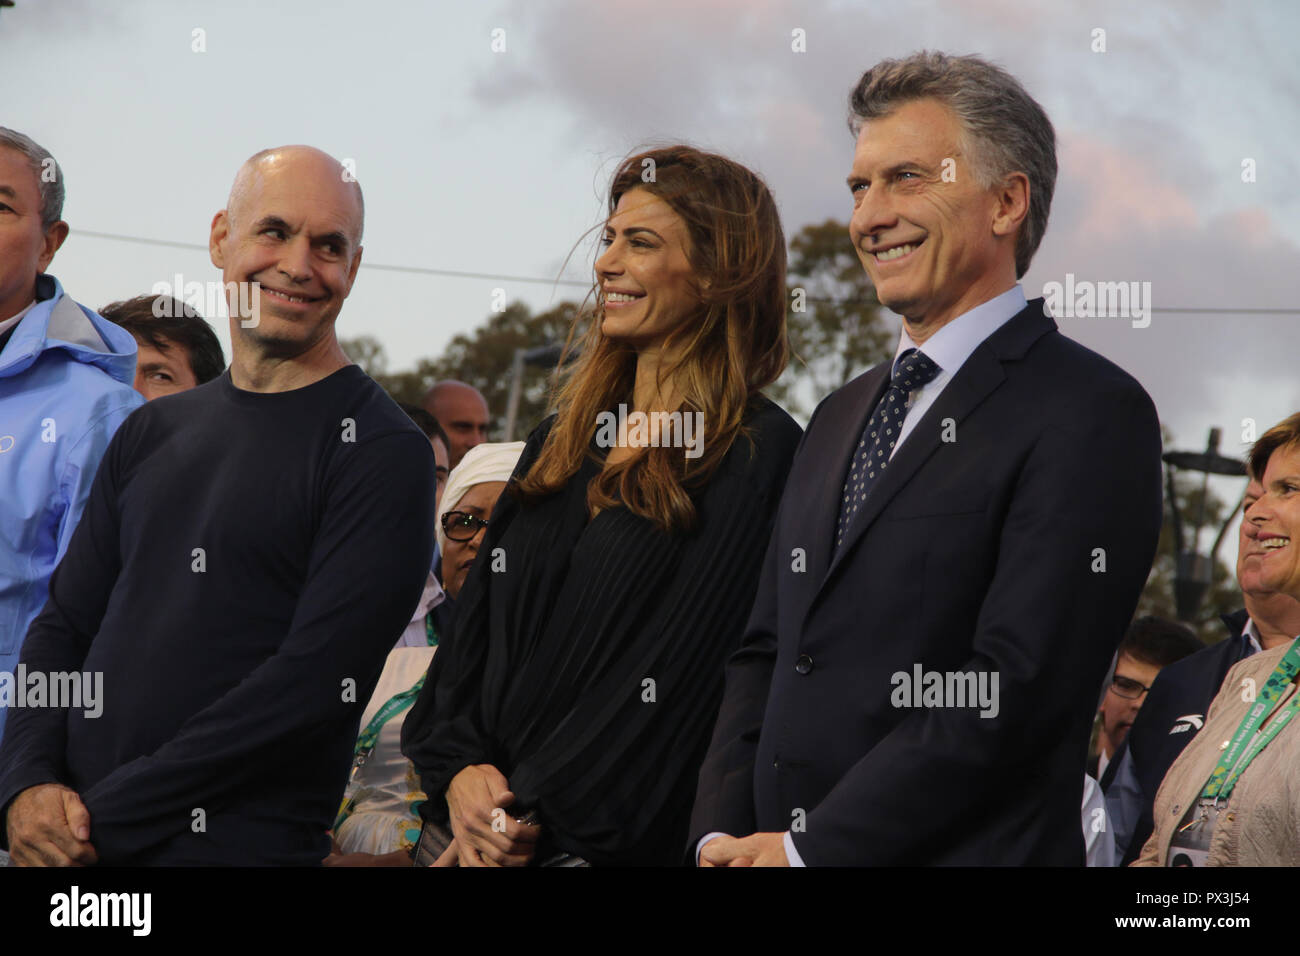 Mauricio Macri, president of Argentina, Thomas Bach, president of IOC and authorities during closing ceremony of 3th Youth Olympic Games of Buenos Aires, Argentina.  - Stock Image